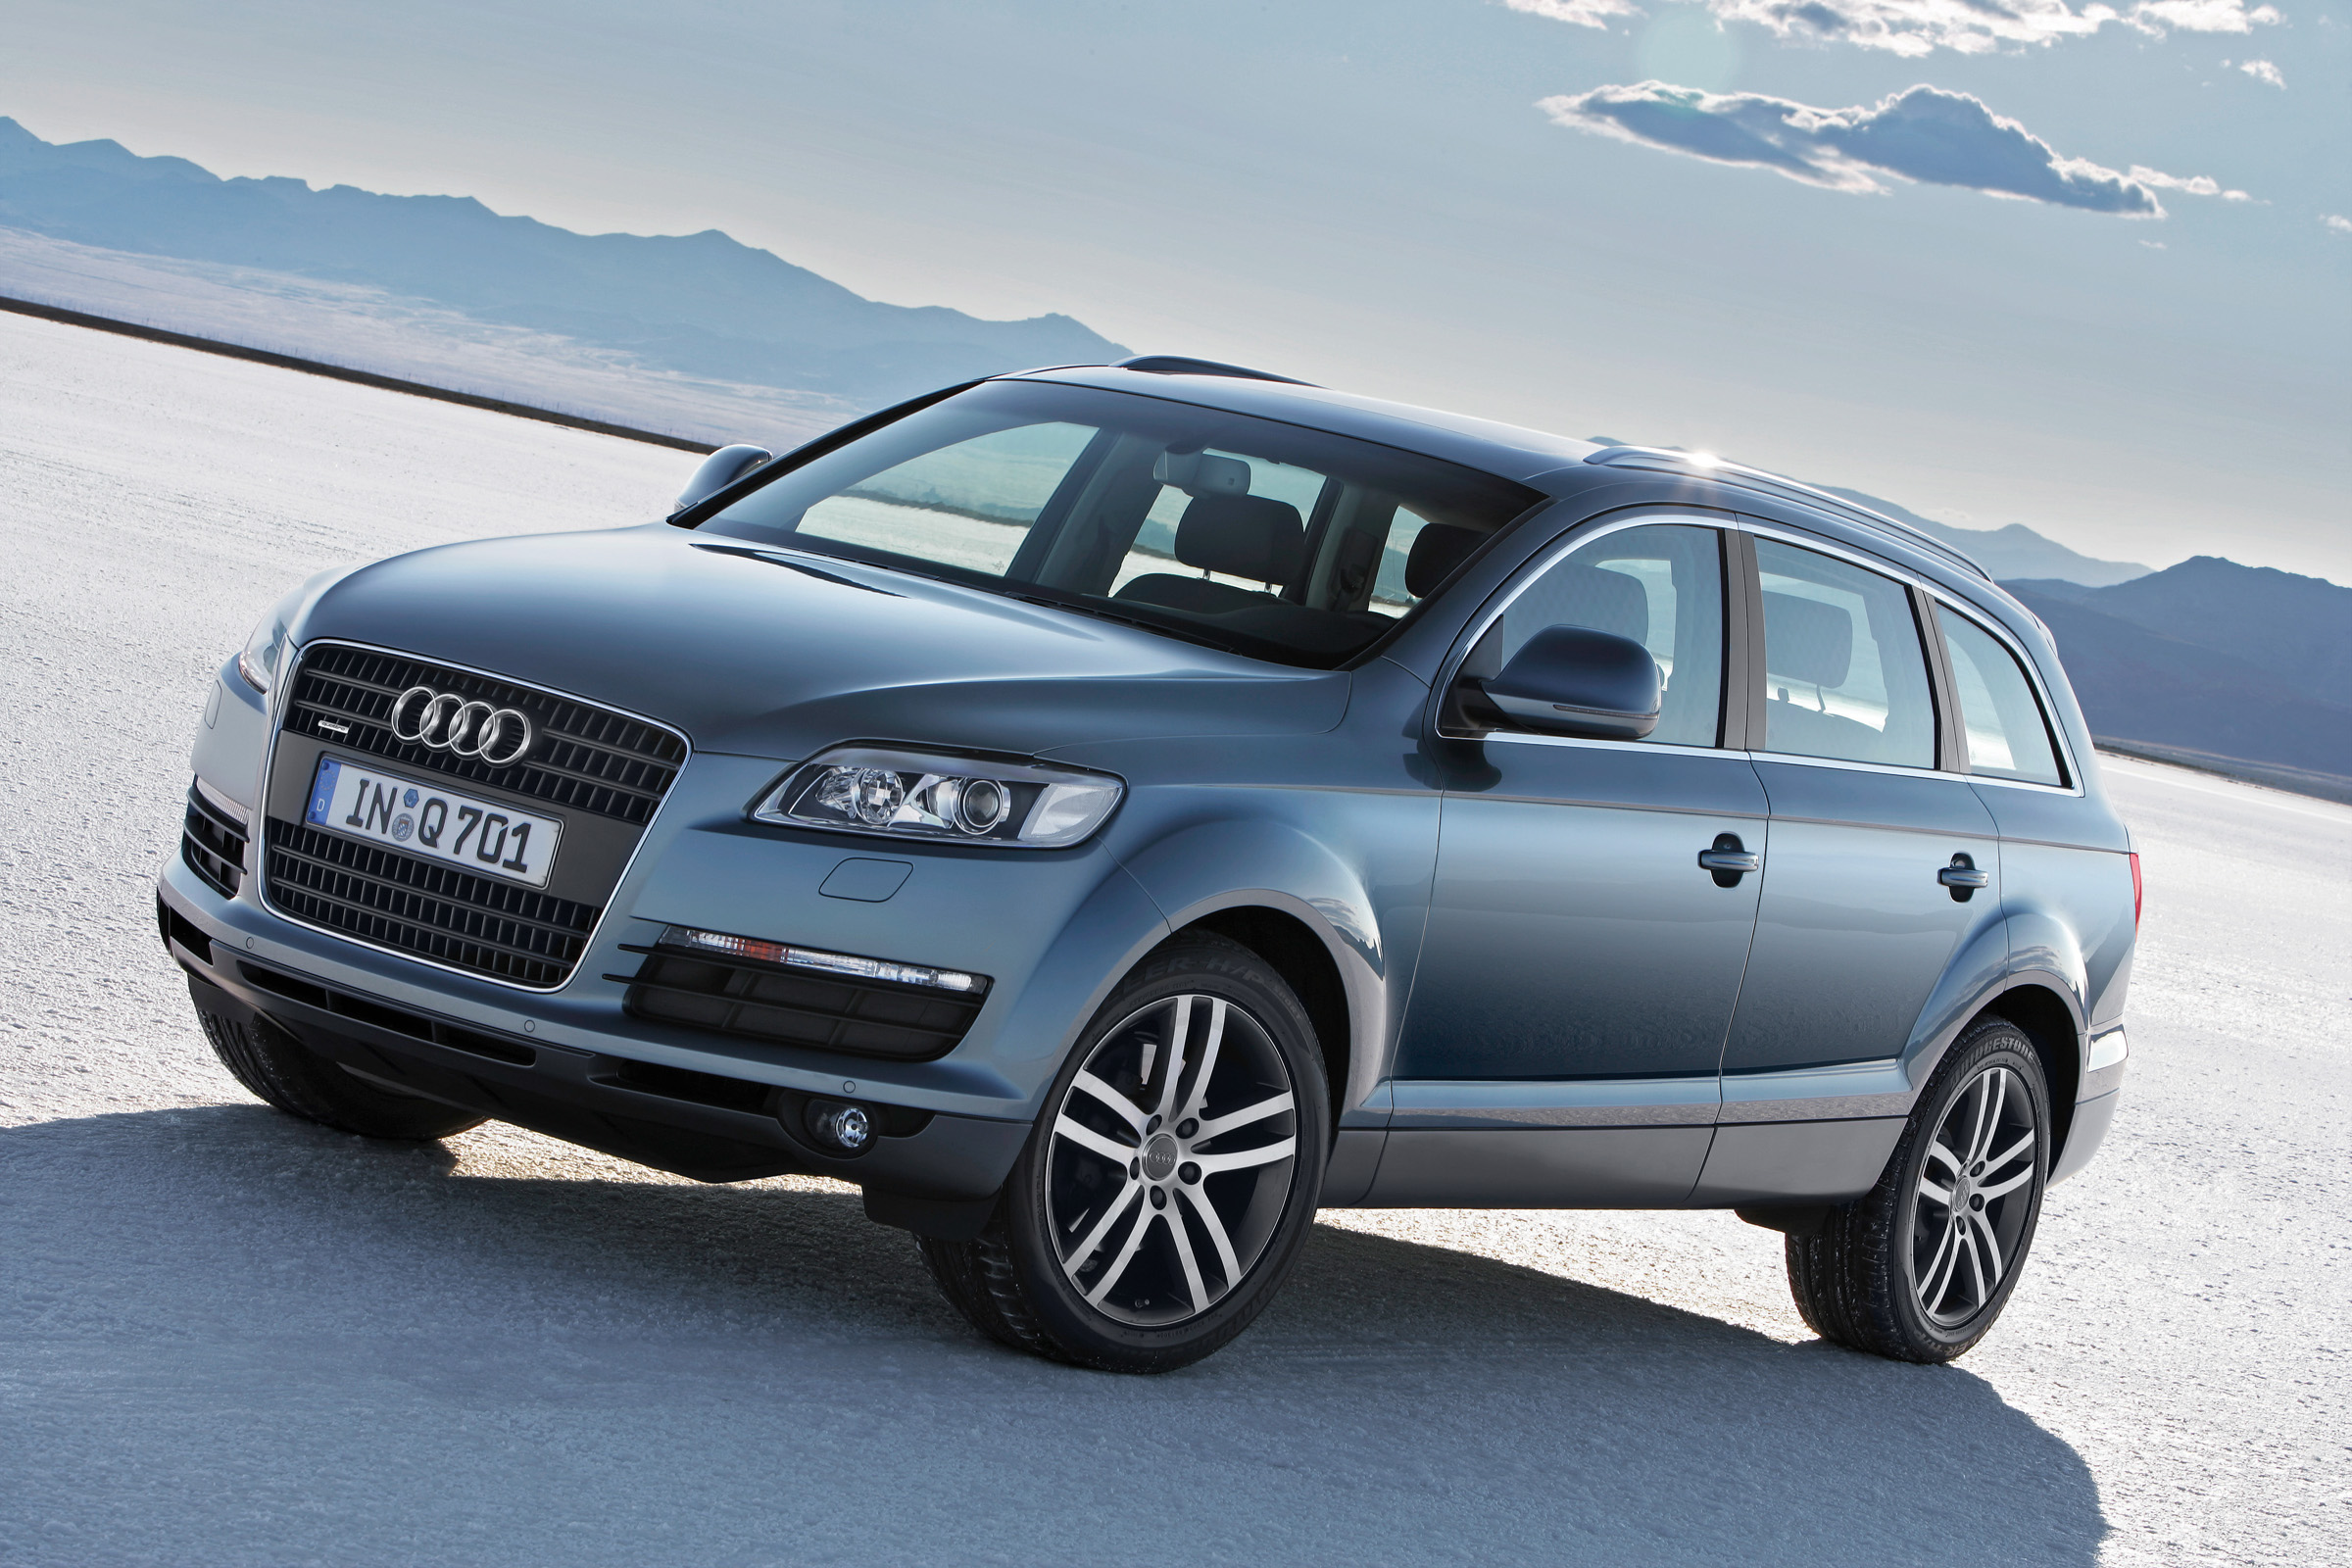 2007 audi q7 gallery 45049 top speed. Black Bedroom Furniture Sets. Home Design Ideas